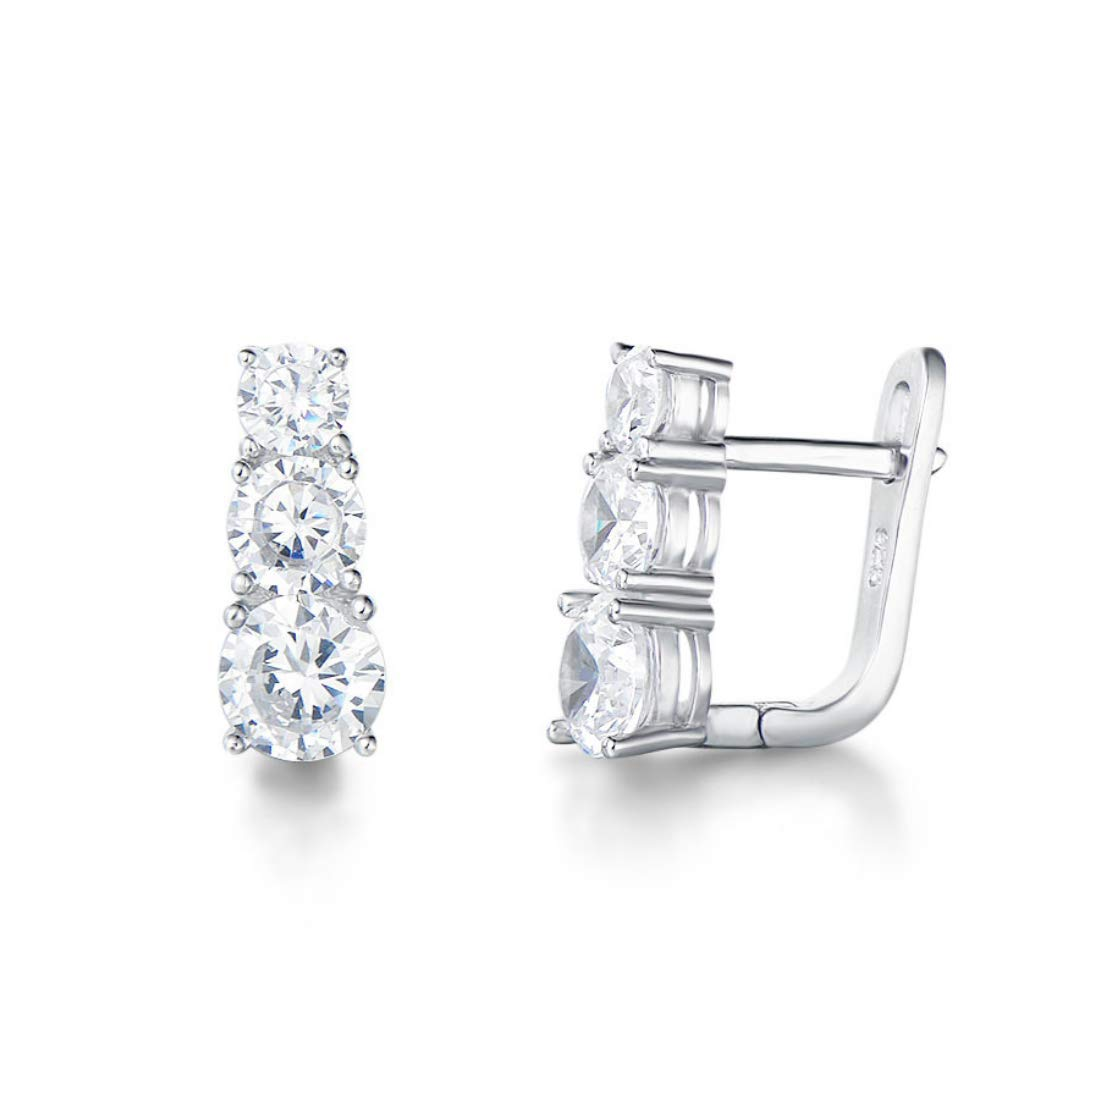 FANCIME Rhodium Plated 925 Sterling Silver 3 Stone CZ Cubic Zirconia Small Hoop Earrings Fashion Jewelry For Women Girls by FANCIME